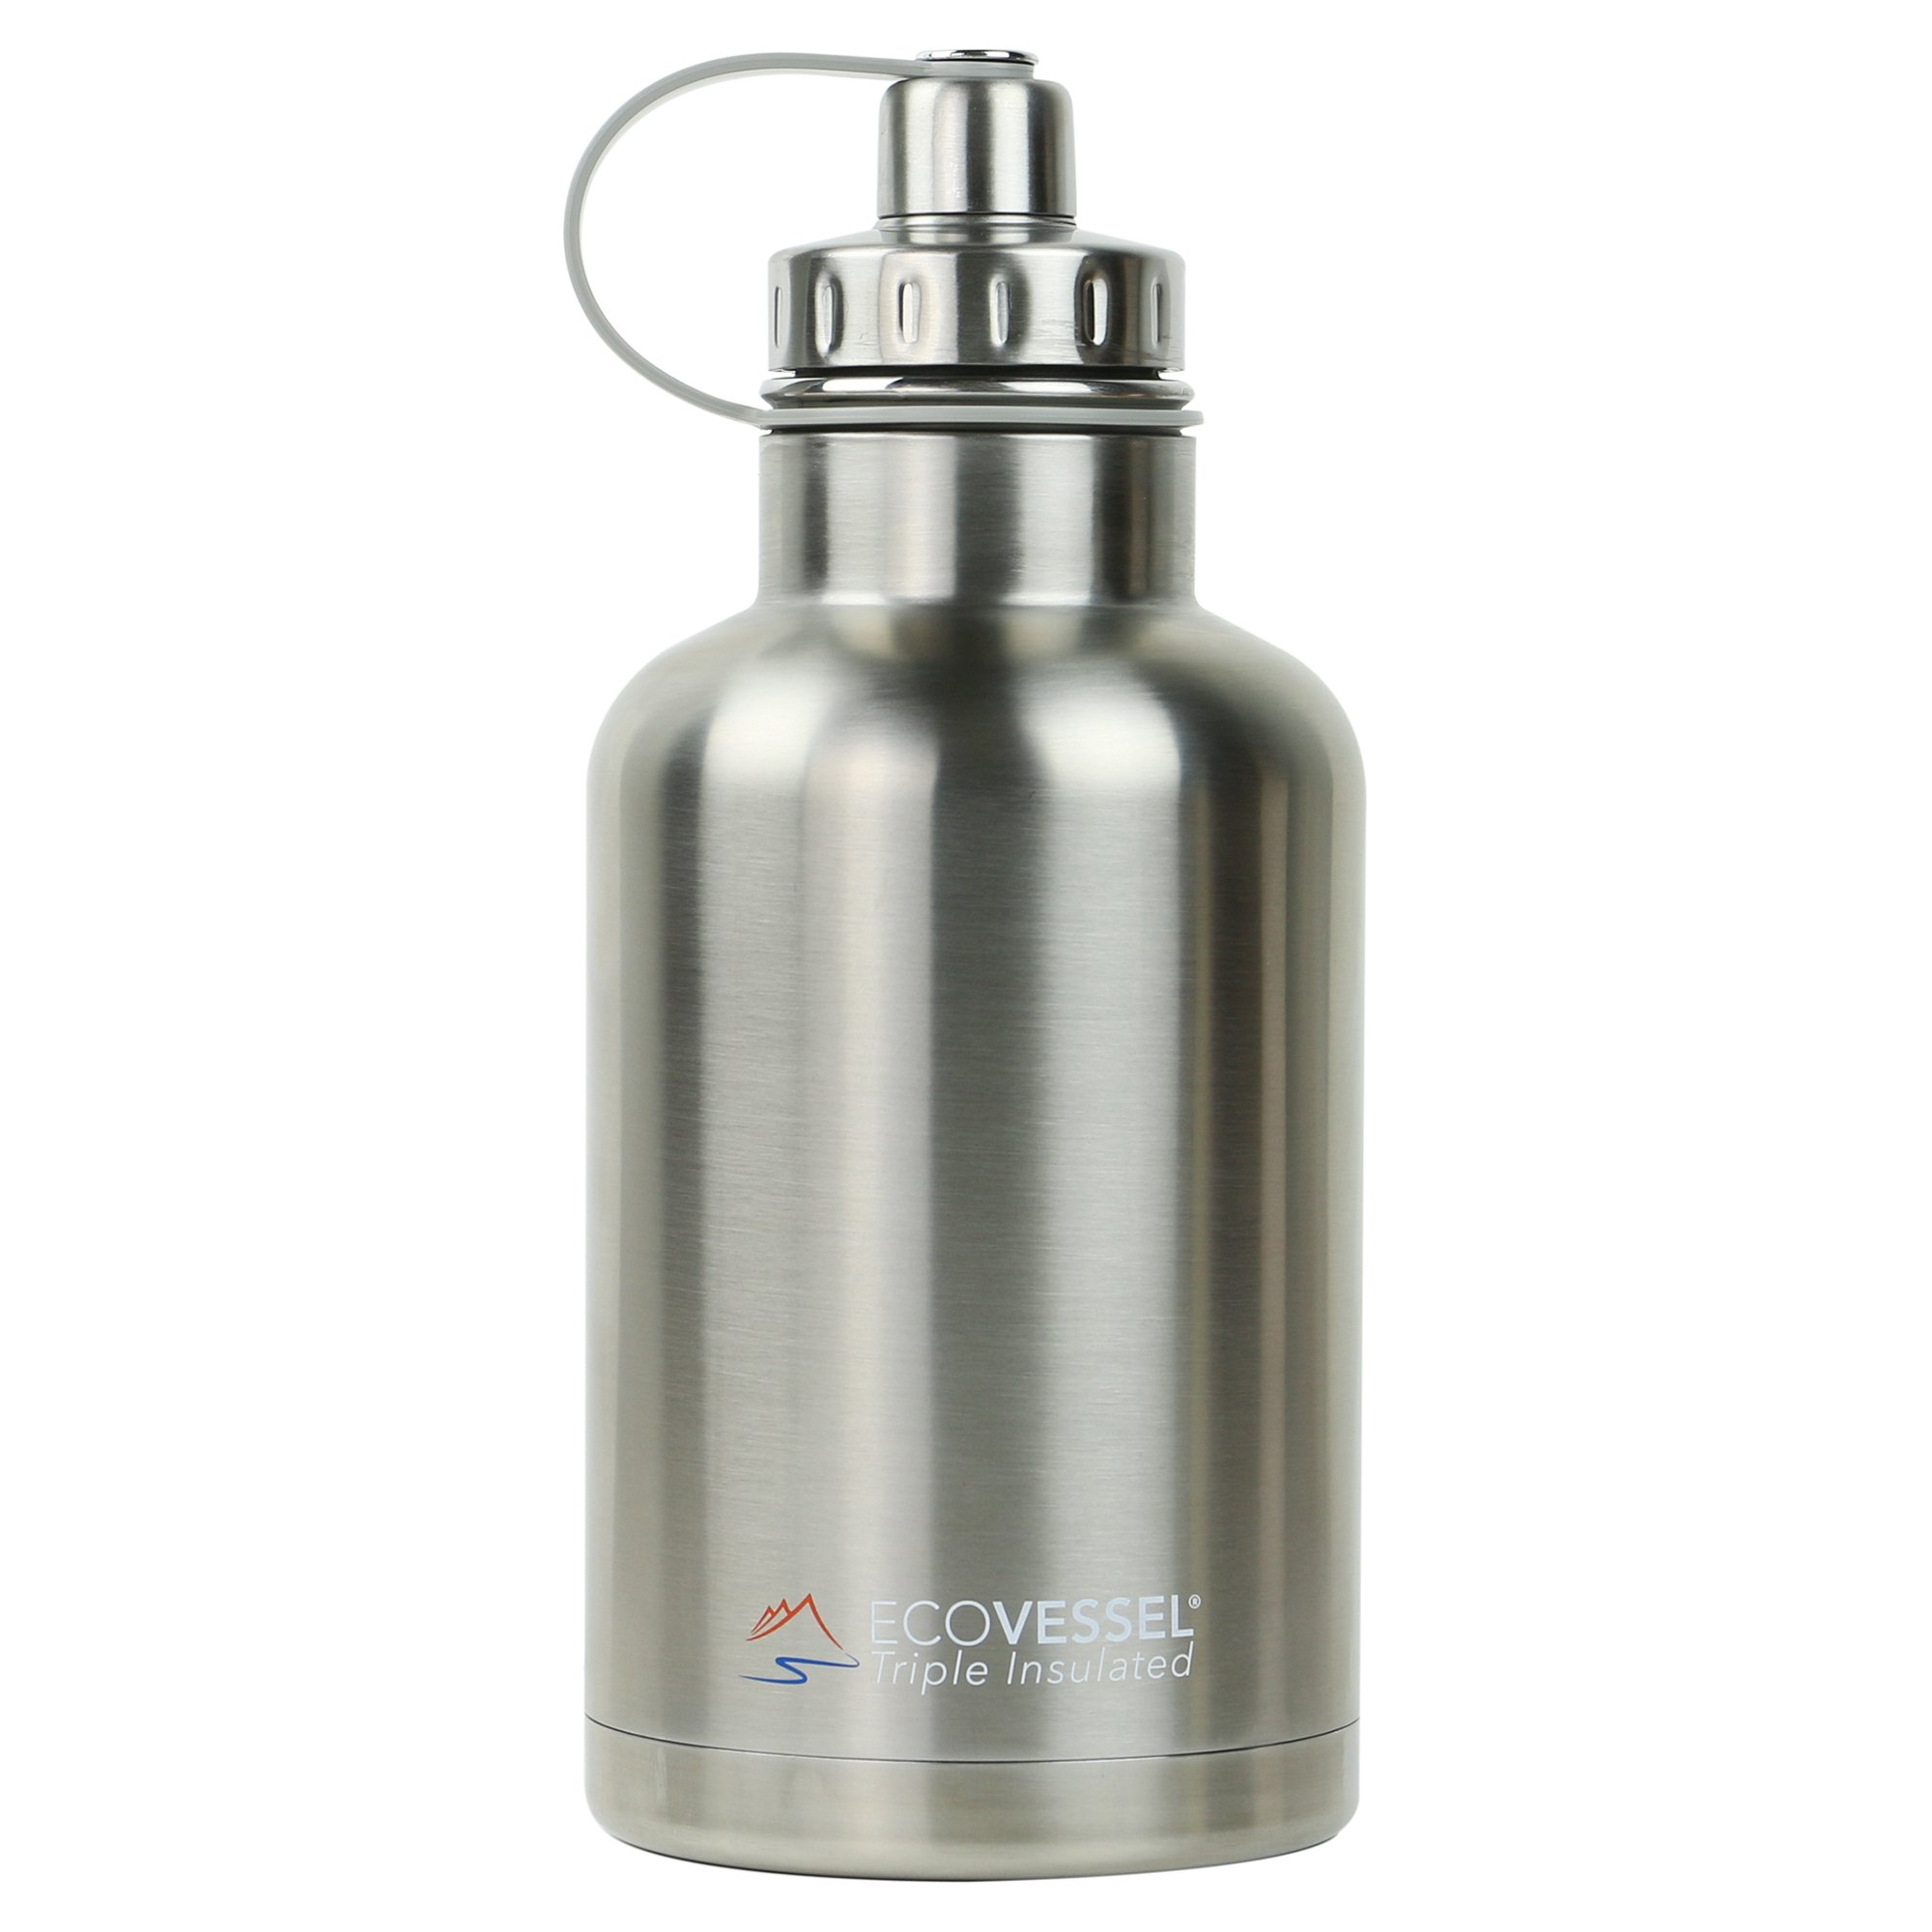 EcoVessel THE BOSS TriMax Insulated Stainless Steel Beer Growler Bottle With Tea And Fruit Infuser - 64 Ounces - Silver Express